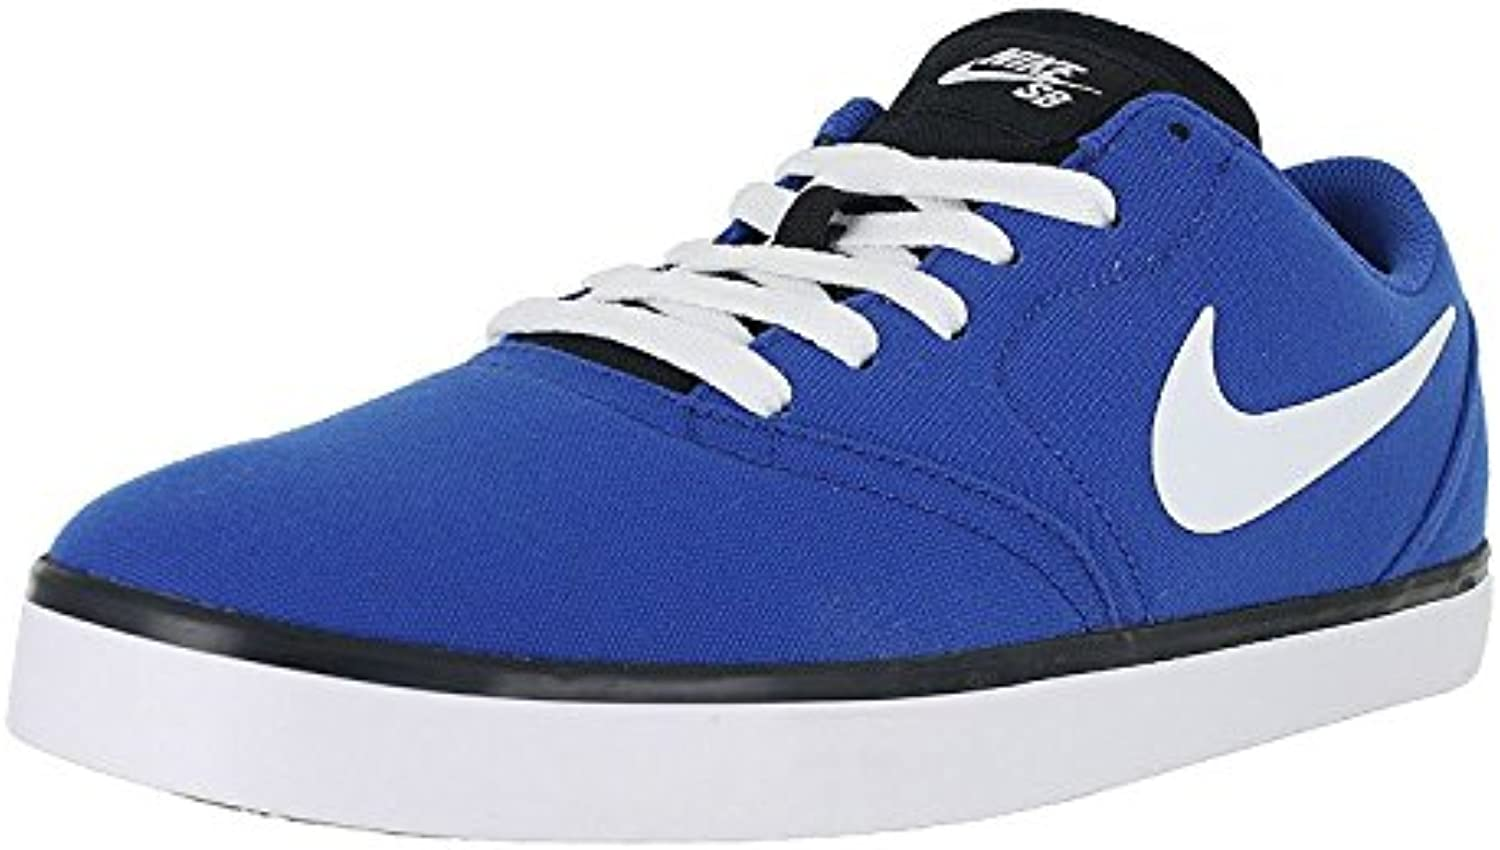 Nike Men's SB Check Cnvs Skateboarding Shoes, Juego azul/blanco/negro, 44 D(M) EU/9 D(M) UK